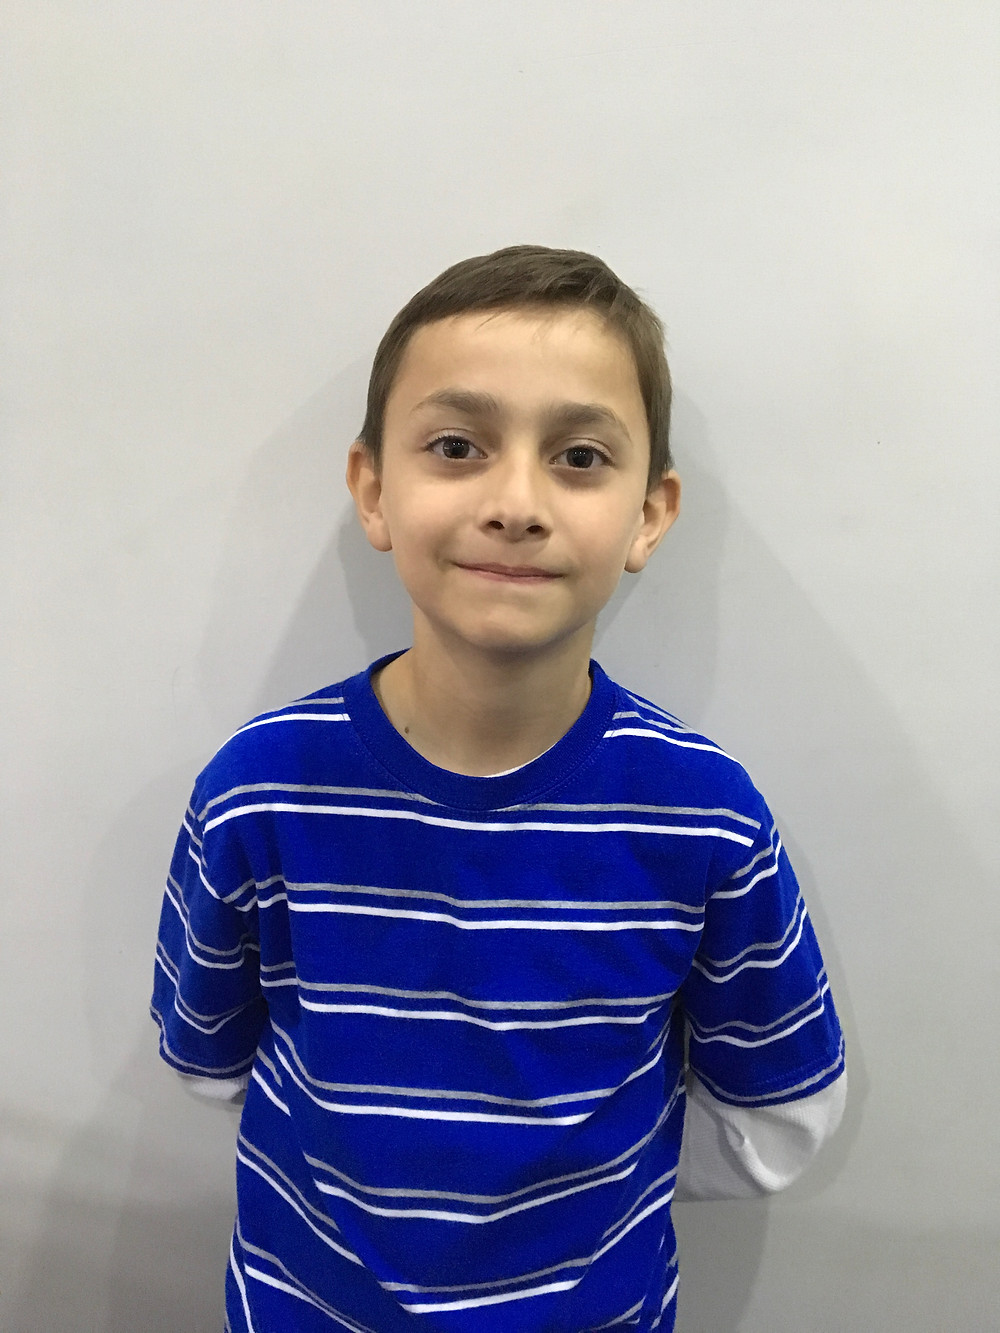 Omair is 8 years old, and in third grade. He enjoys math (especially multiplication drills and mental math) and English. Pizza, and peanut butter and jelly sandwiches are his favorite foods. His hobbies include video games and soccer. But he's afraid of the dark.